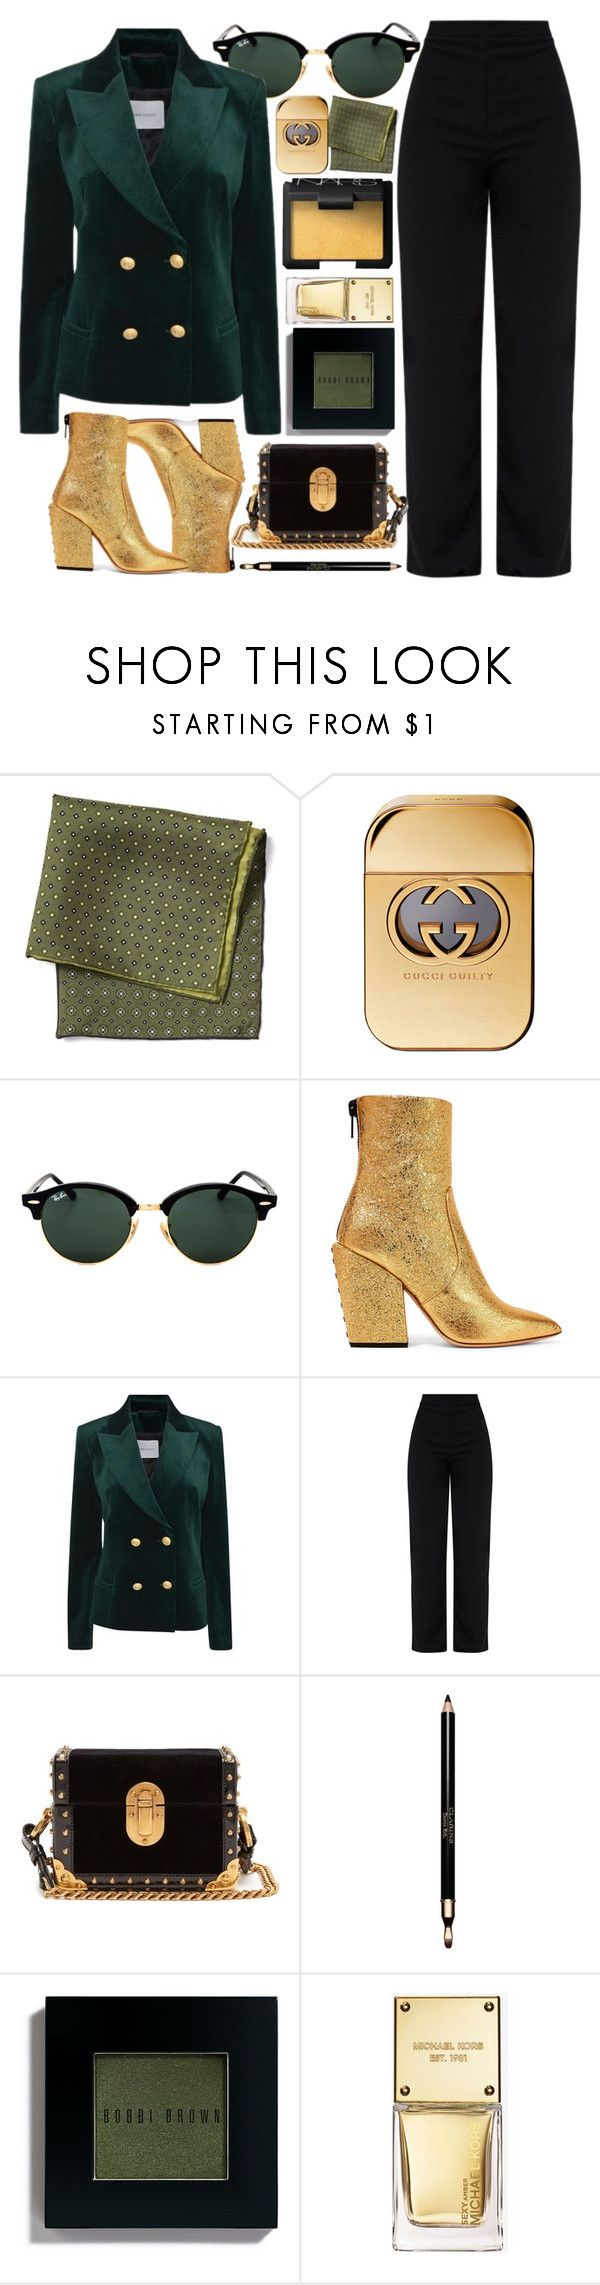 """Compliment"" by smartbuyglasses-uk ❤ liked on Polyvore featuring Ray-Ban, Petar Petrov, Pierre Balmain, Prada, Clarins, Bobbi Brown Cosmetics, Michael Kors, NARS Cosmetics, gold and GREEN"